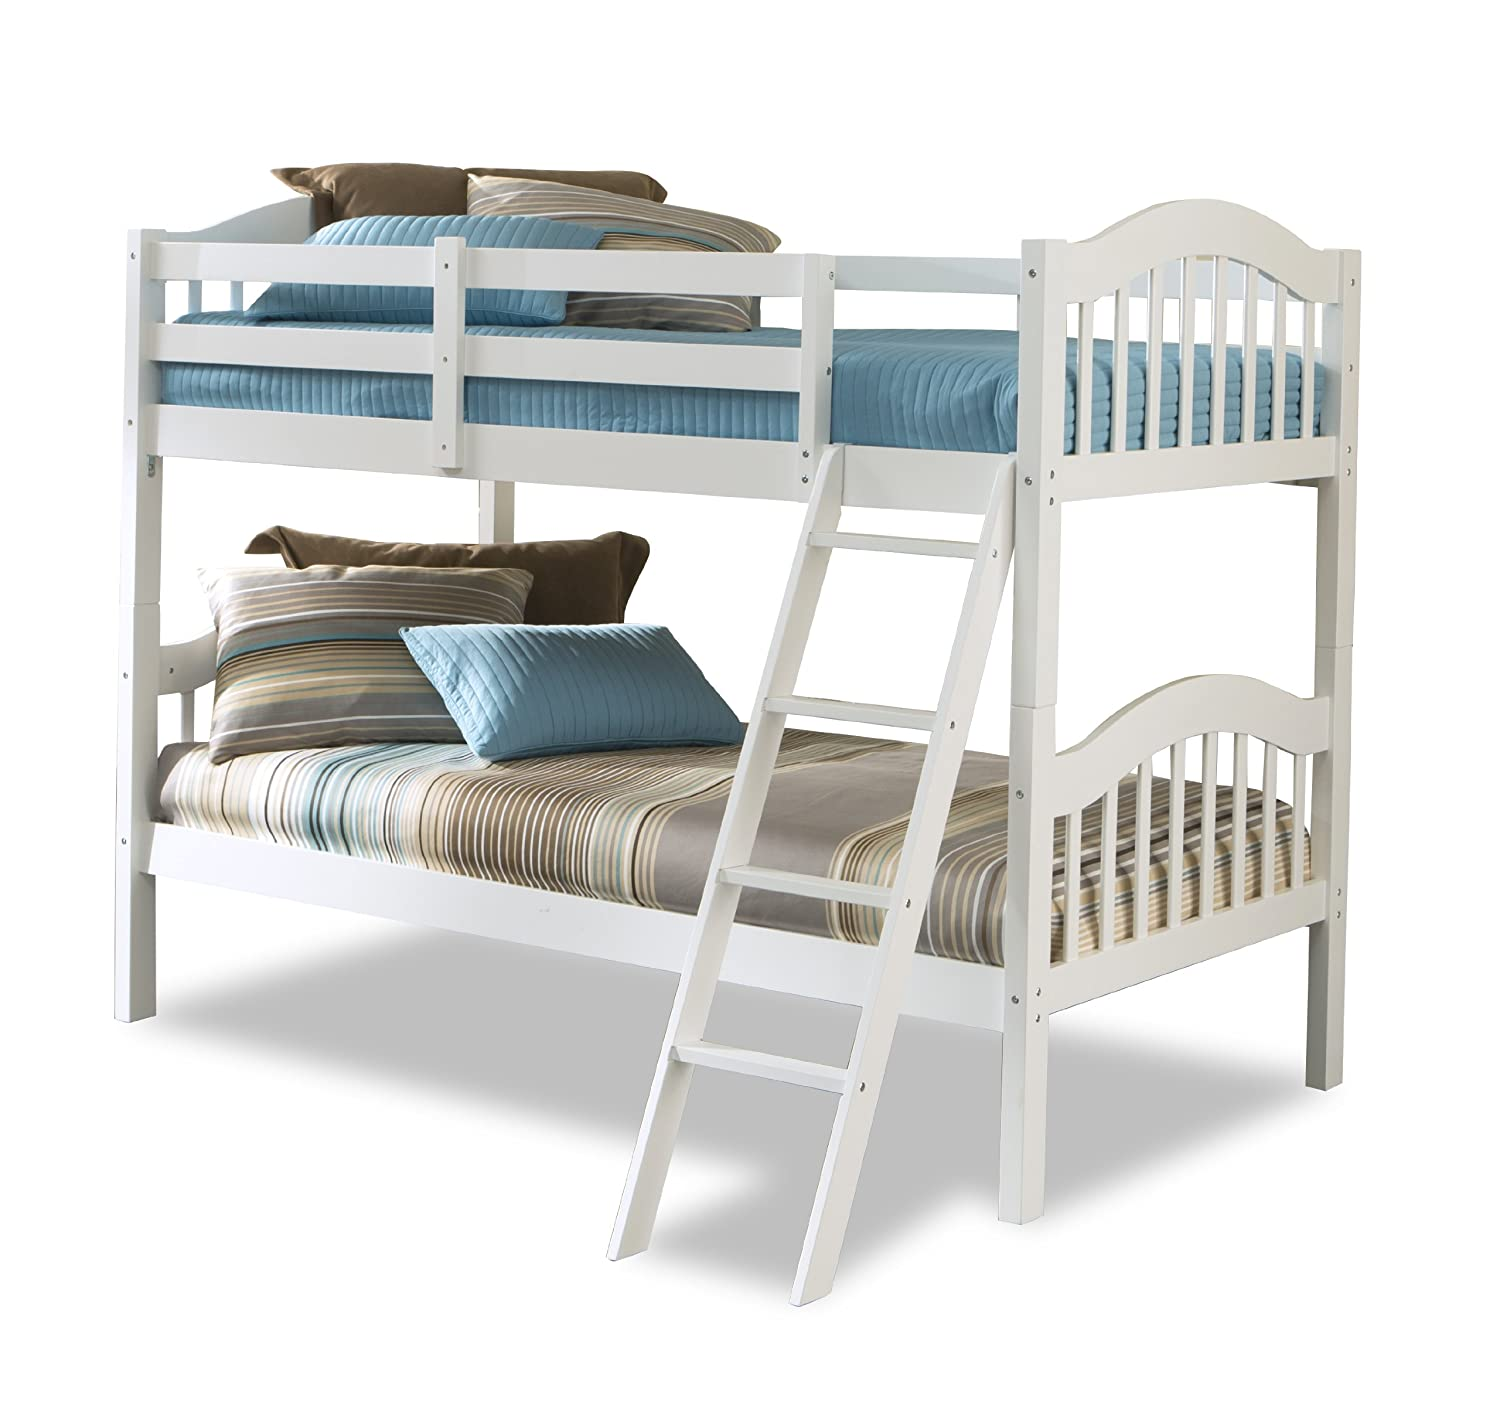 Stork Craft Long Horn Bunk Bed reviews